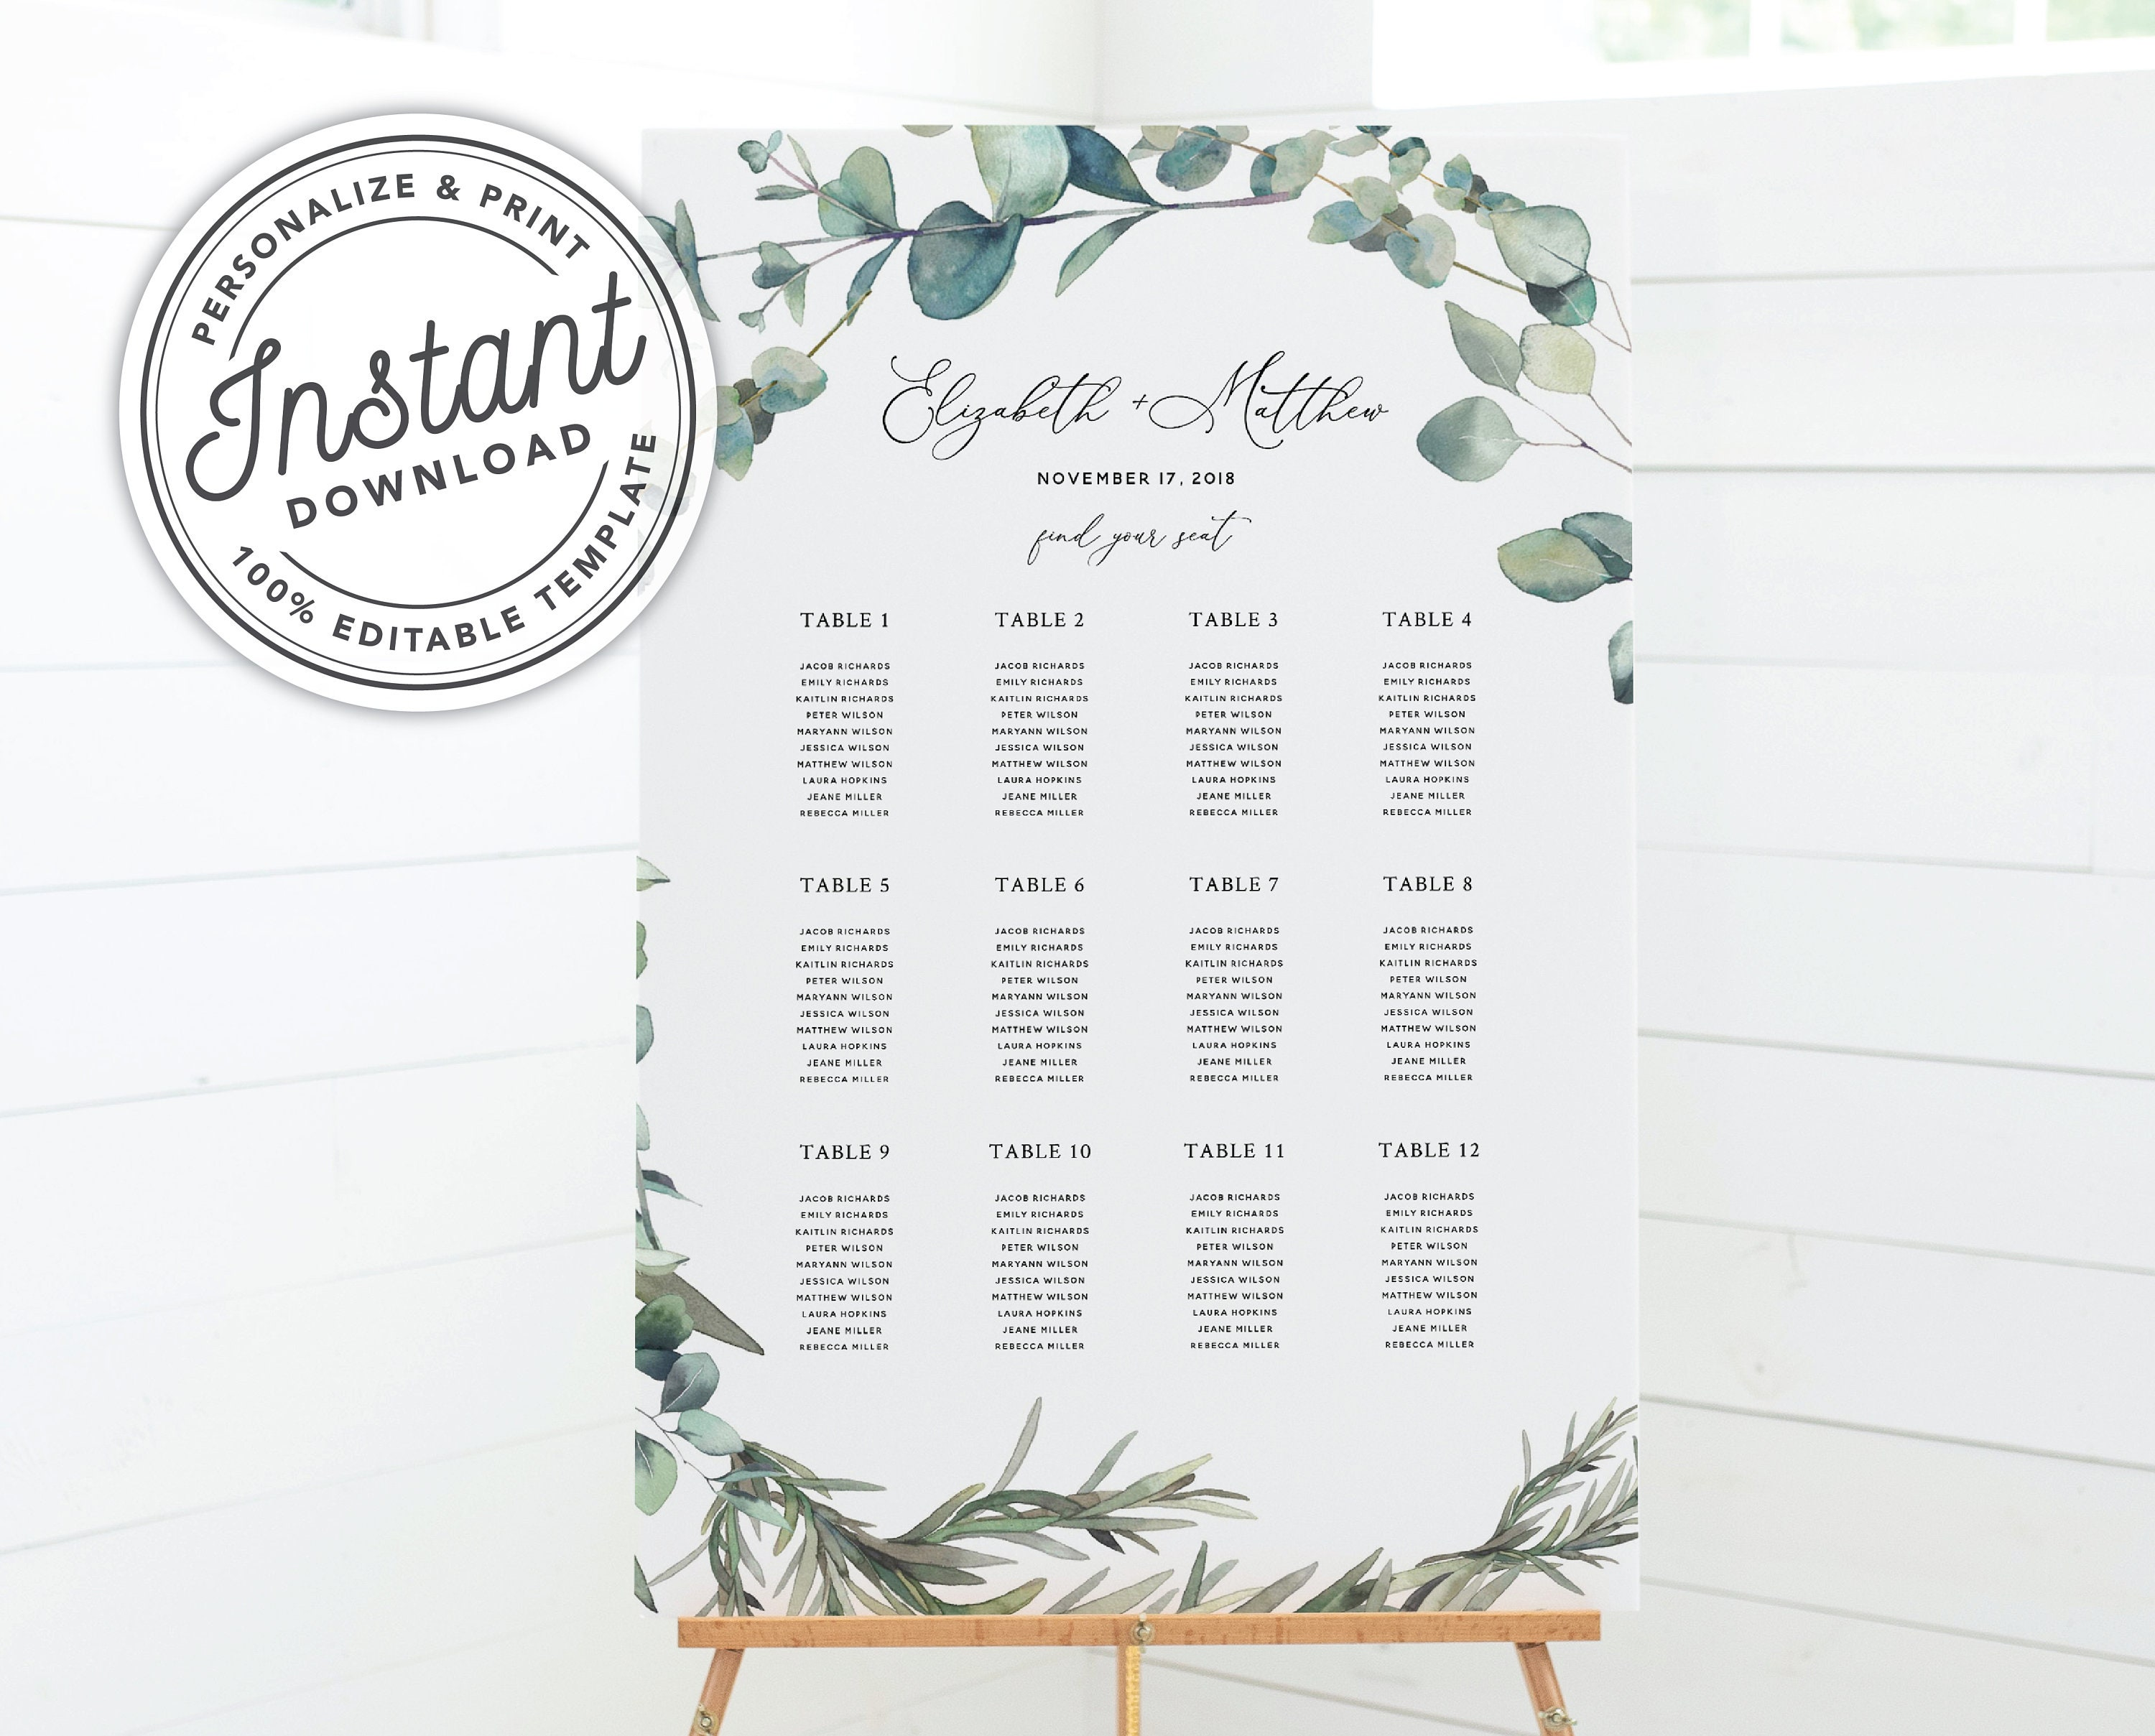 picture relating to Printable Wedding Seating Chart named Boho Wreath Printable Wedding ceremony Seating Chart with Eucalyptus Greenery (18x24, 24x36, A2, A1) Fast Obtain Editable Template #023